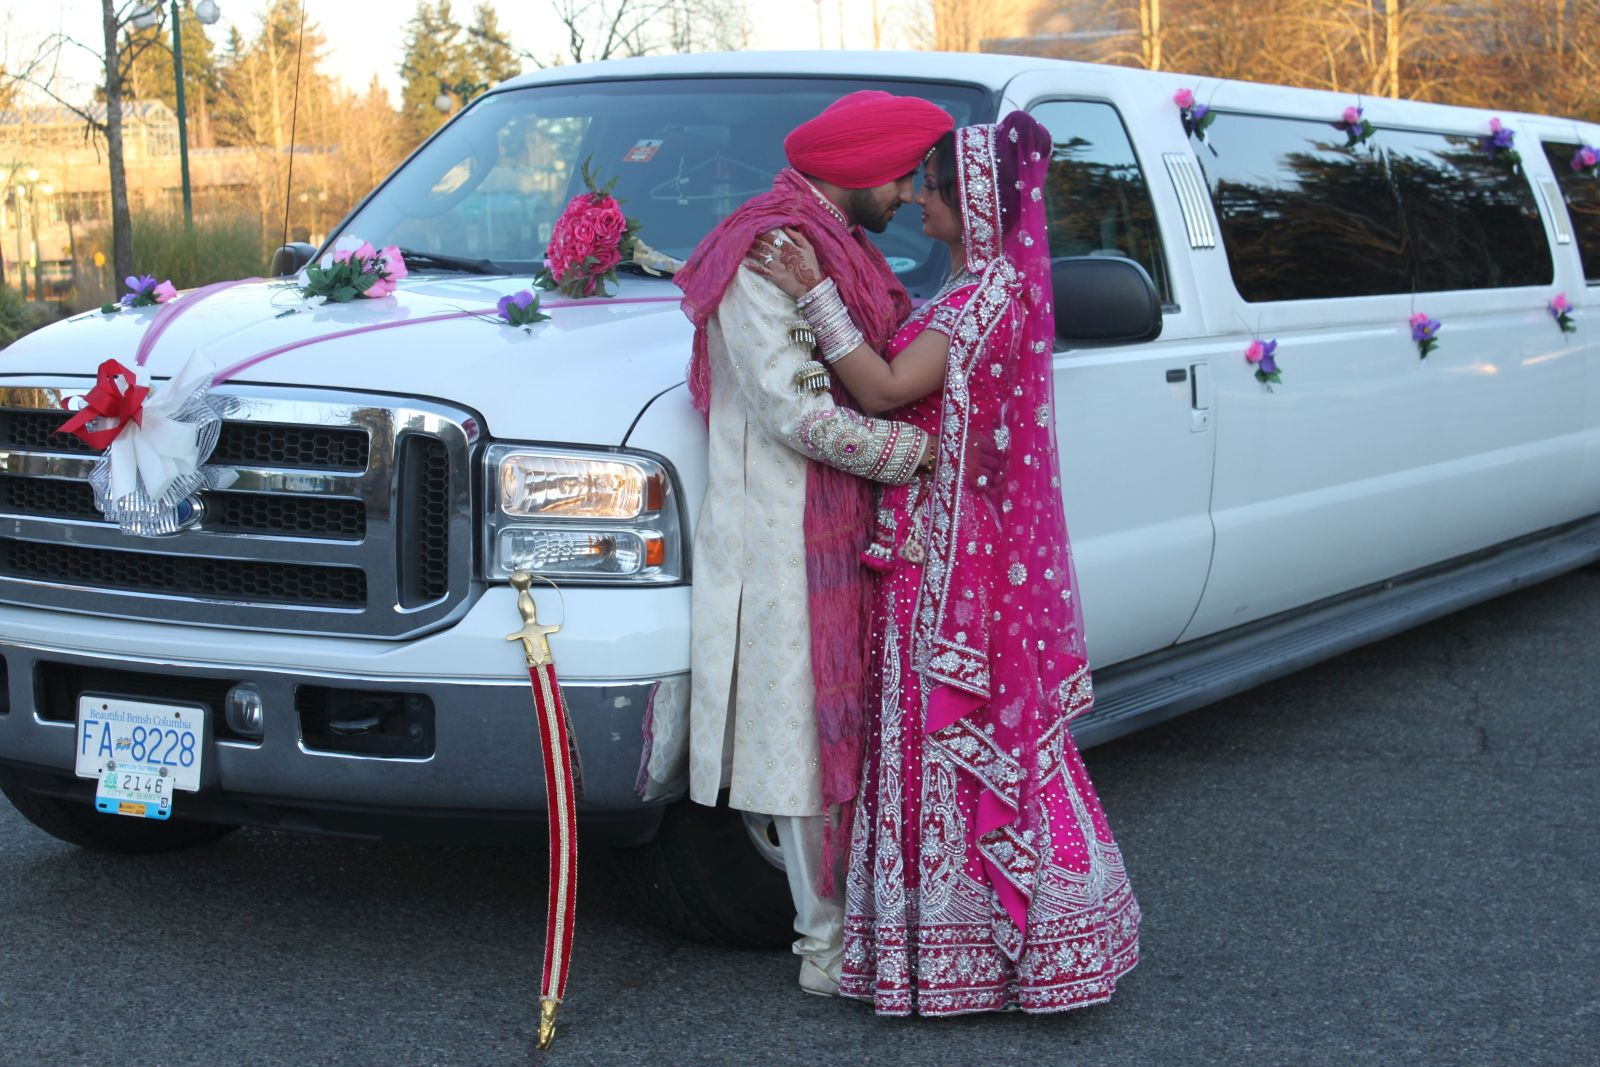 Love is in the air - Couple in front of President Limousine